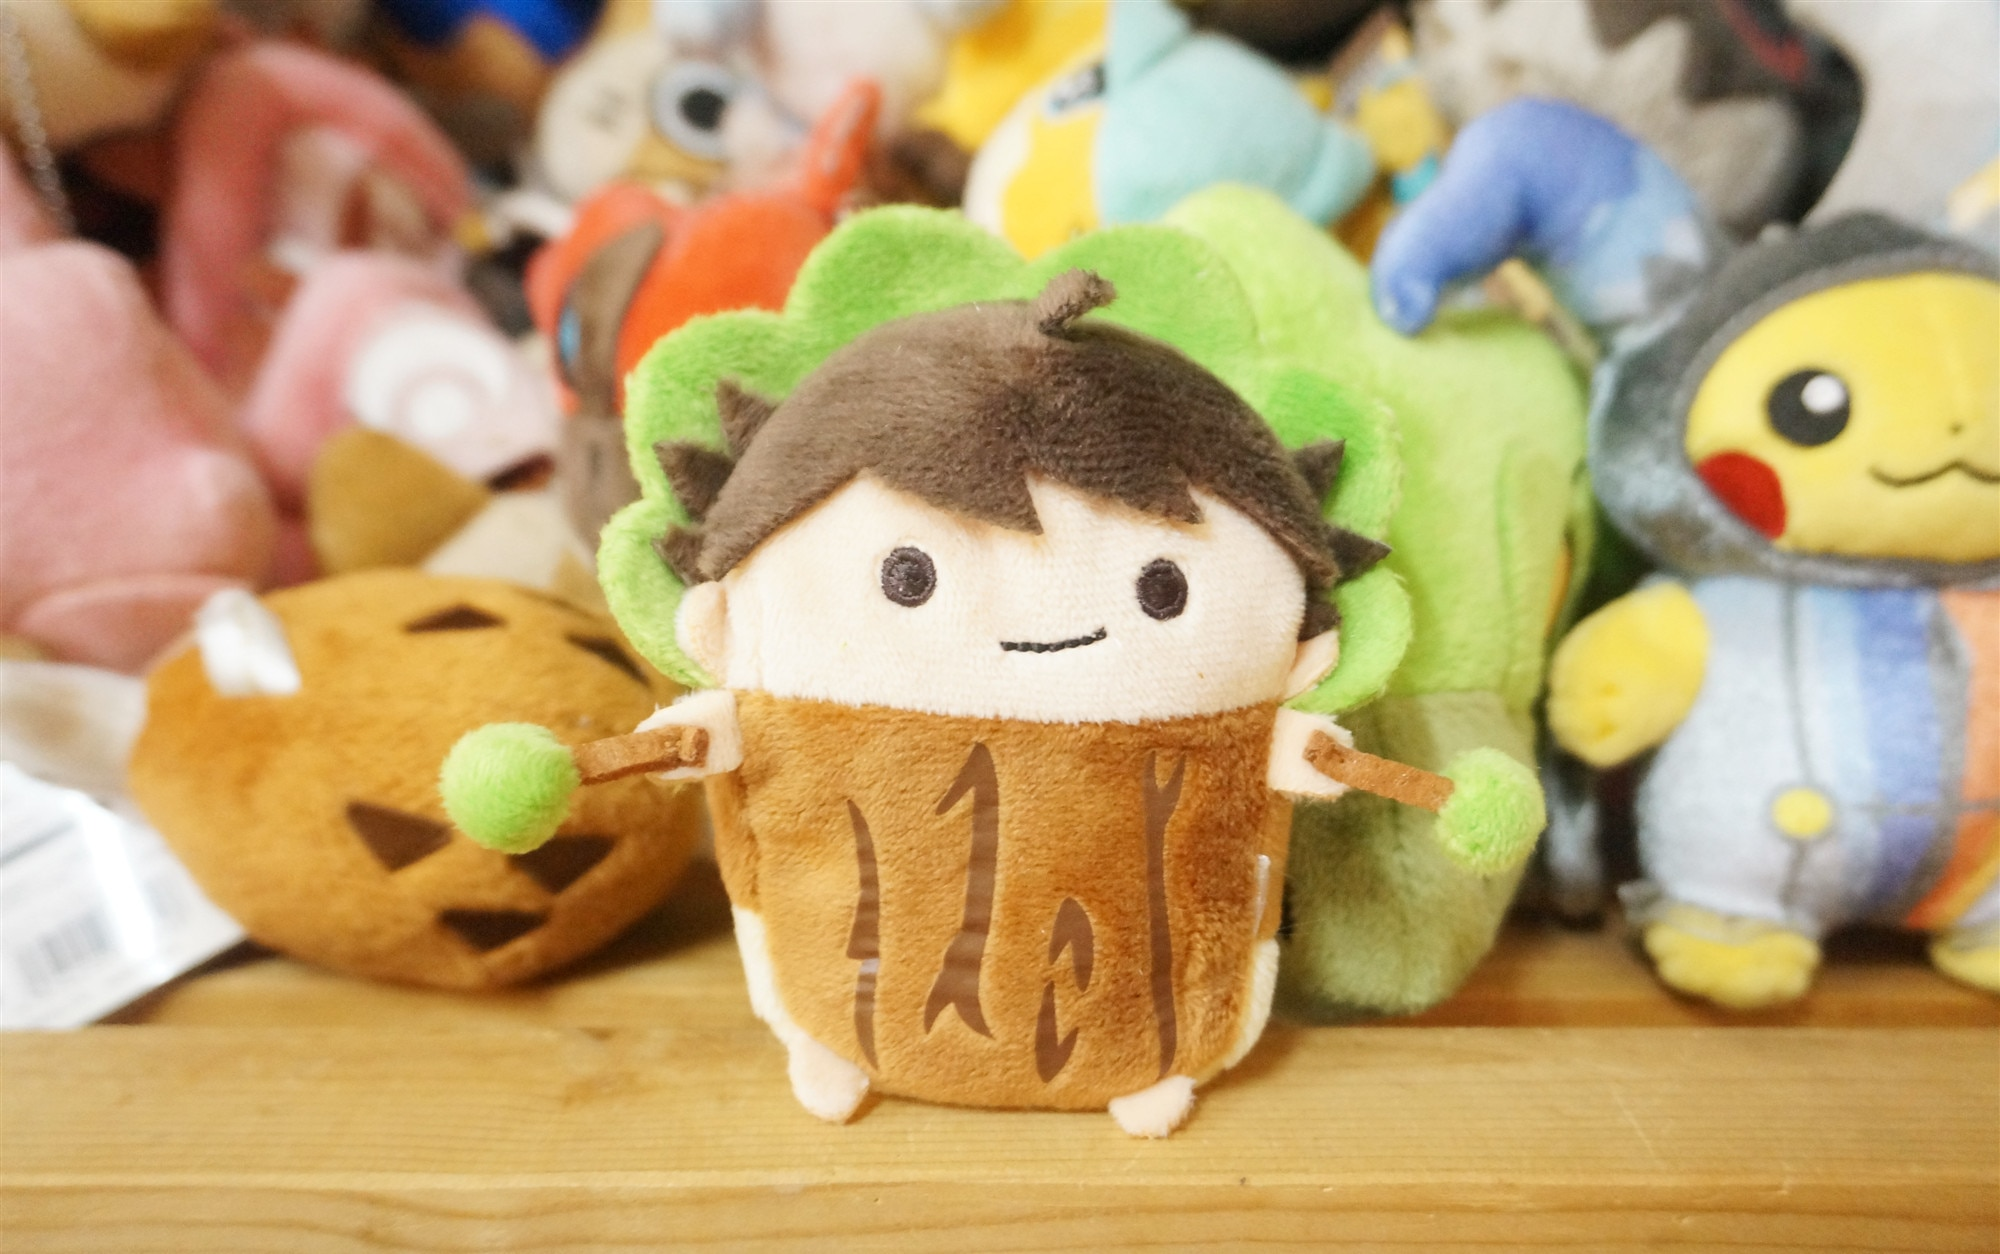 Original Cute Anime Haikyuu!! Volleyball Athlete Oikawa Collection Model Kids Toys Doll Gift